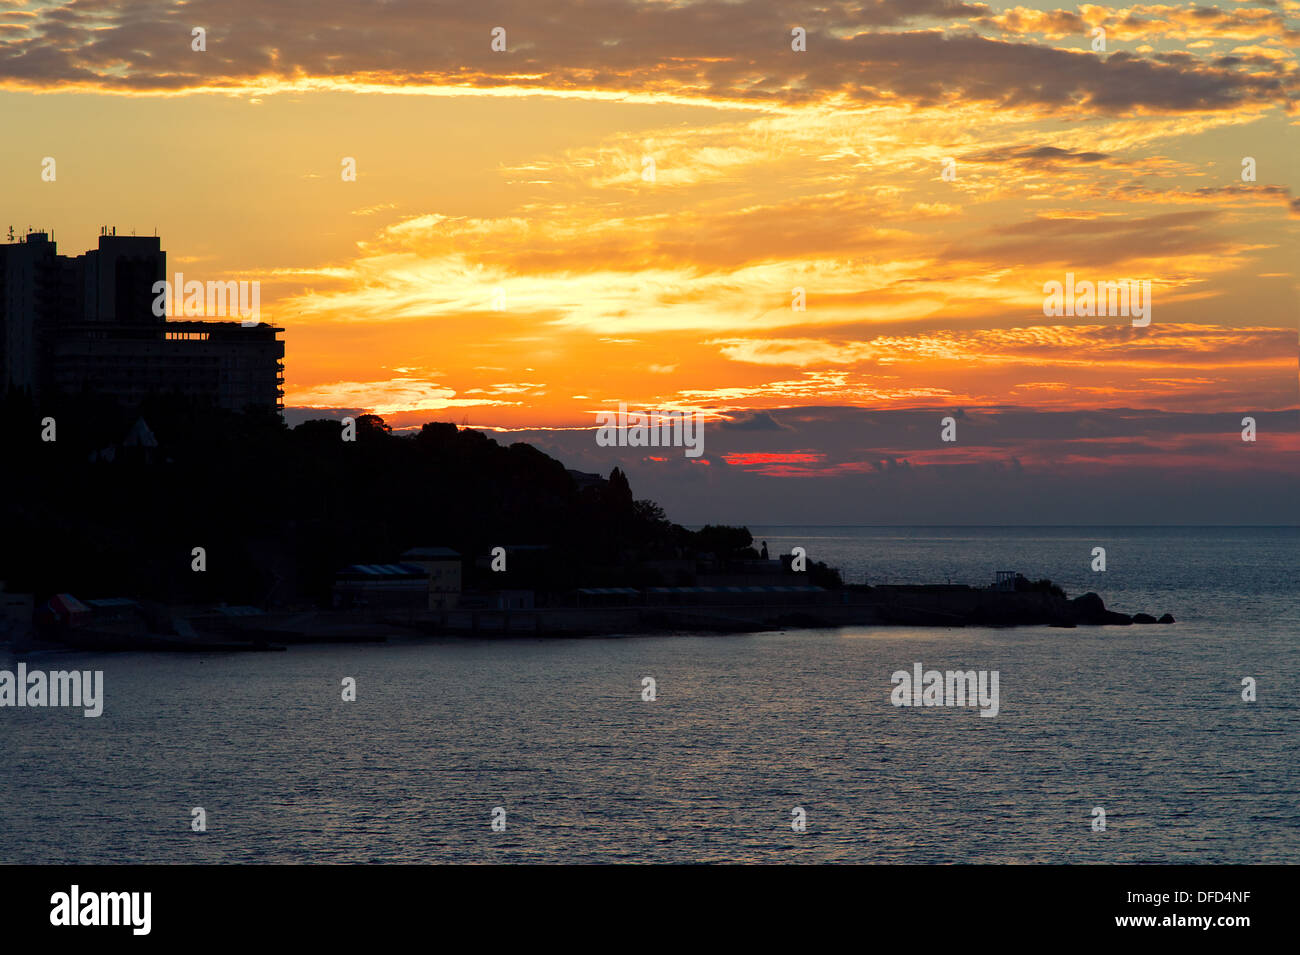 Background of dawning Sky and Sea on Sunrise with town silhouette beautiful scenery with natural orange colors - Stock Image